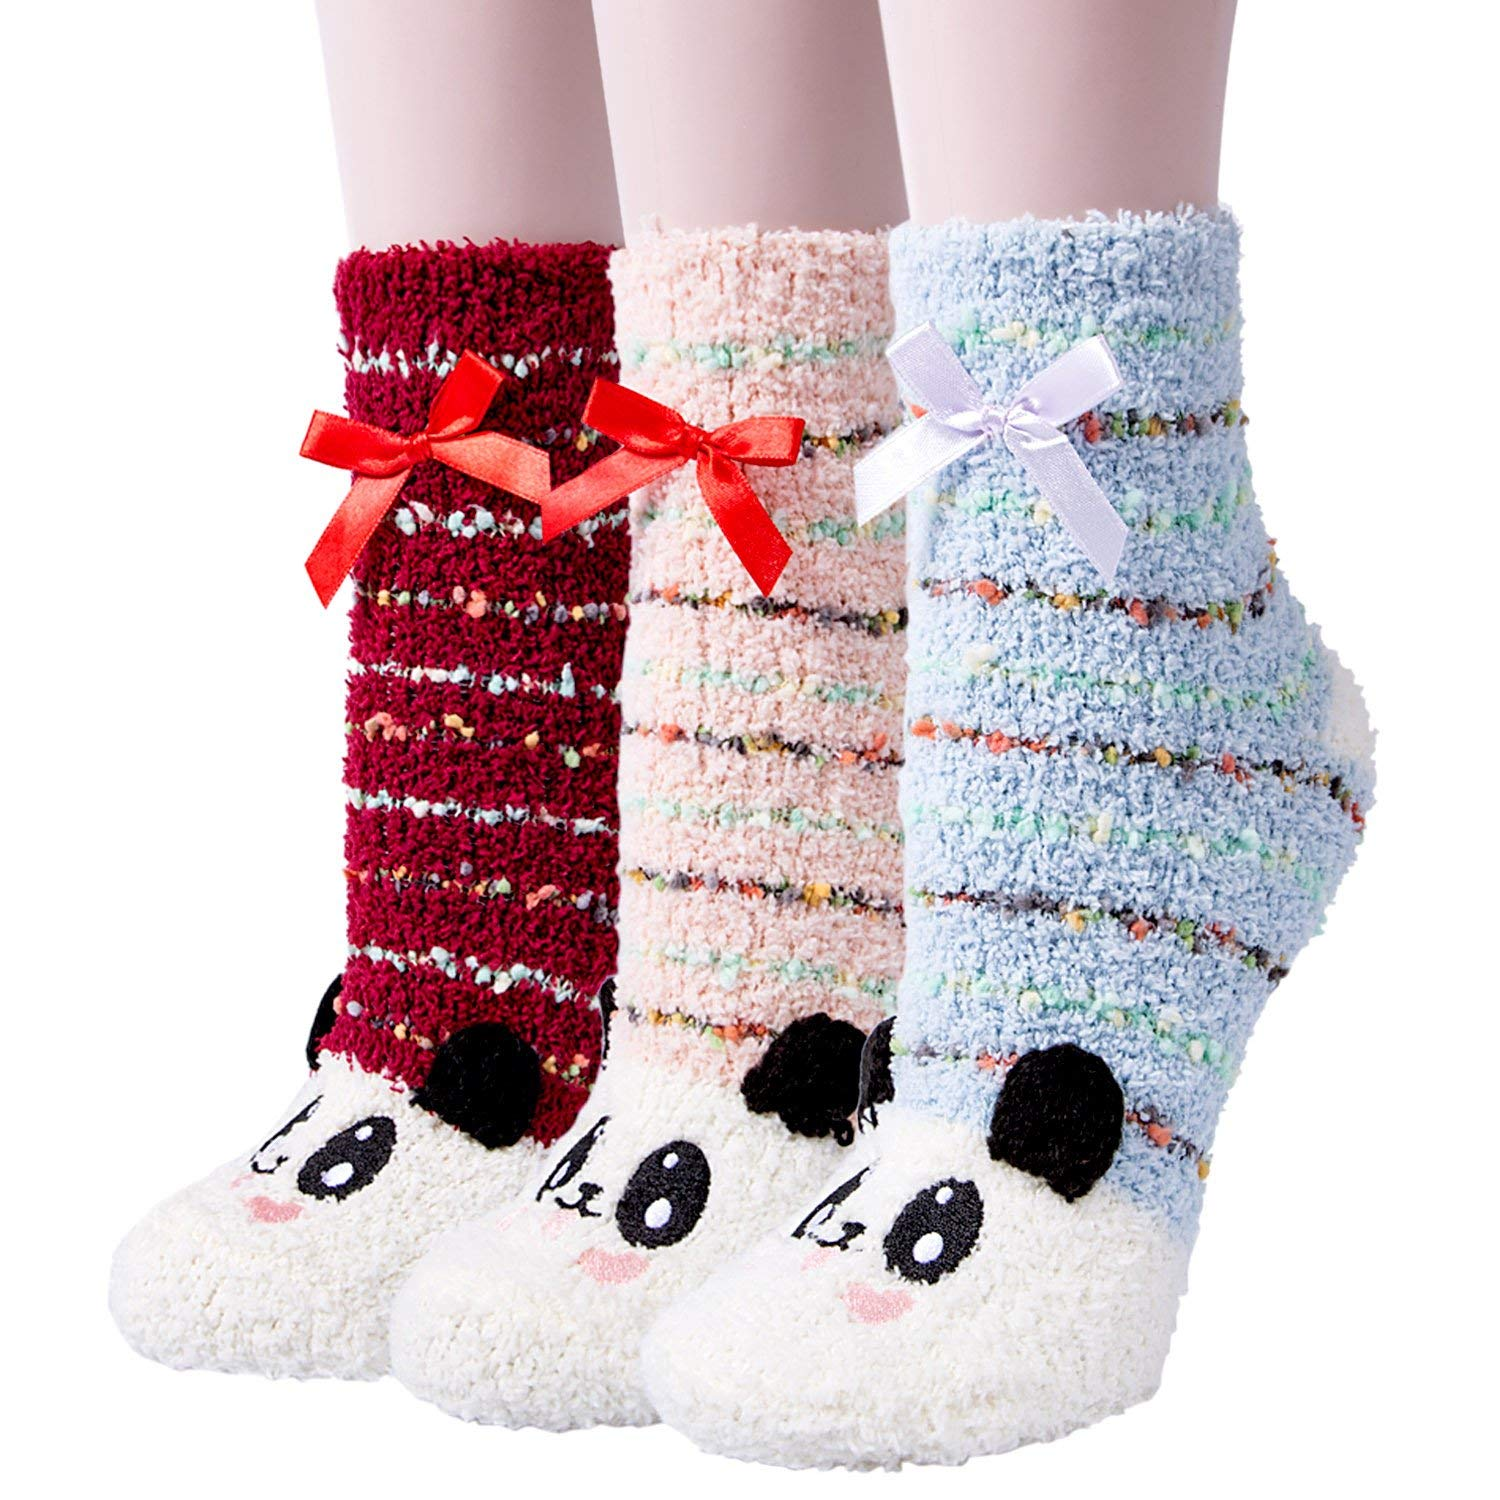 c4f424efc595f Get Quotations · 3 Pairs Womens Fuzzy Soft Slipper Socks Home Sleeping  Winter Warm Fluffy Cute Animal Socks